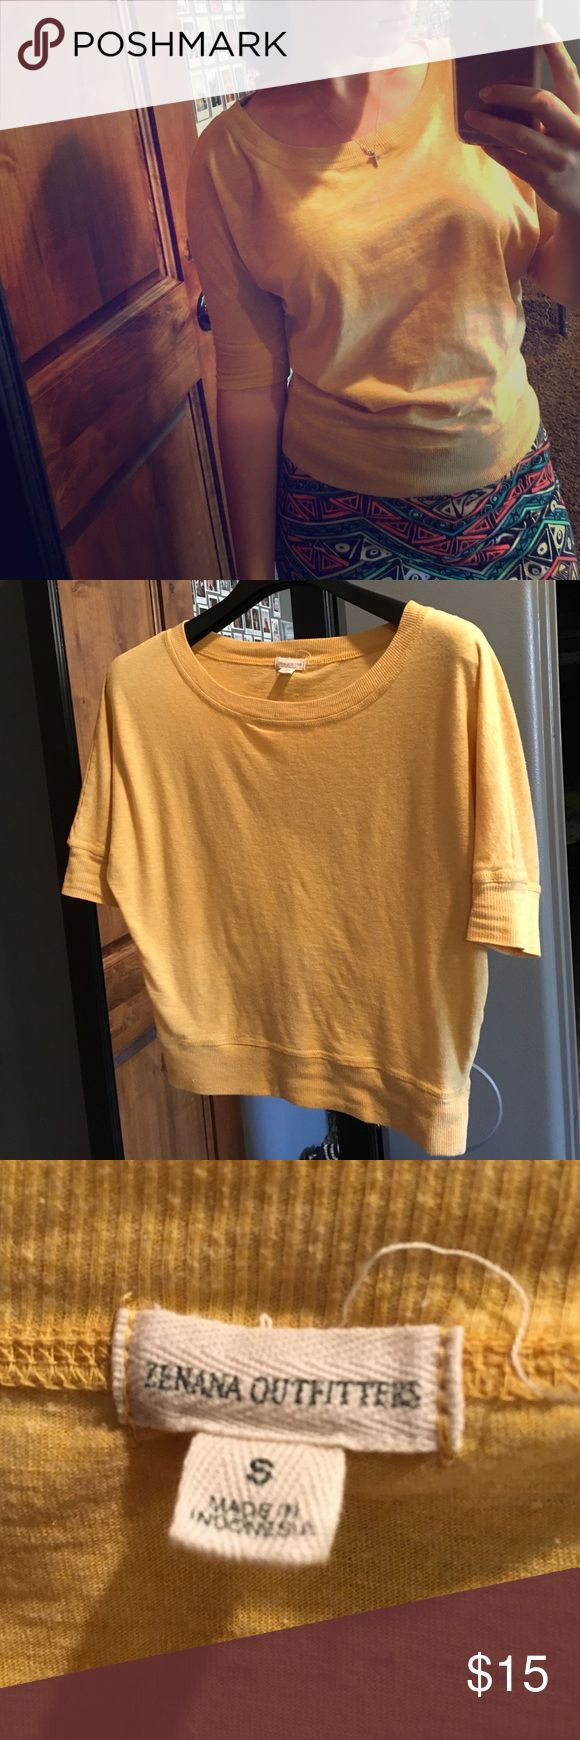 Yellow Short Sleeve Top Worn a couple times but in good condition 🙂 wide scoop neck. Cotton. Zenana Outfitters Tops Tees - Short Sleeve